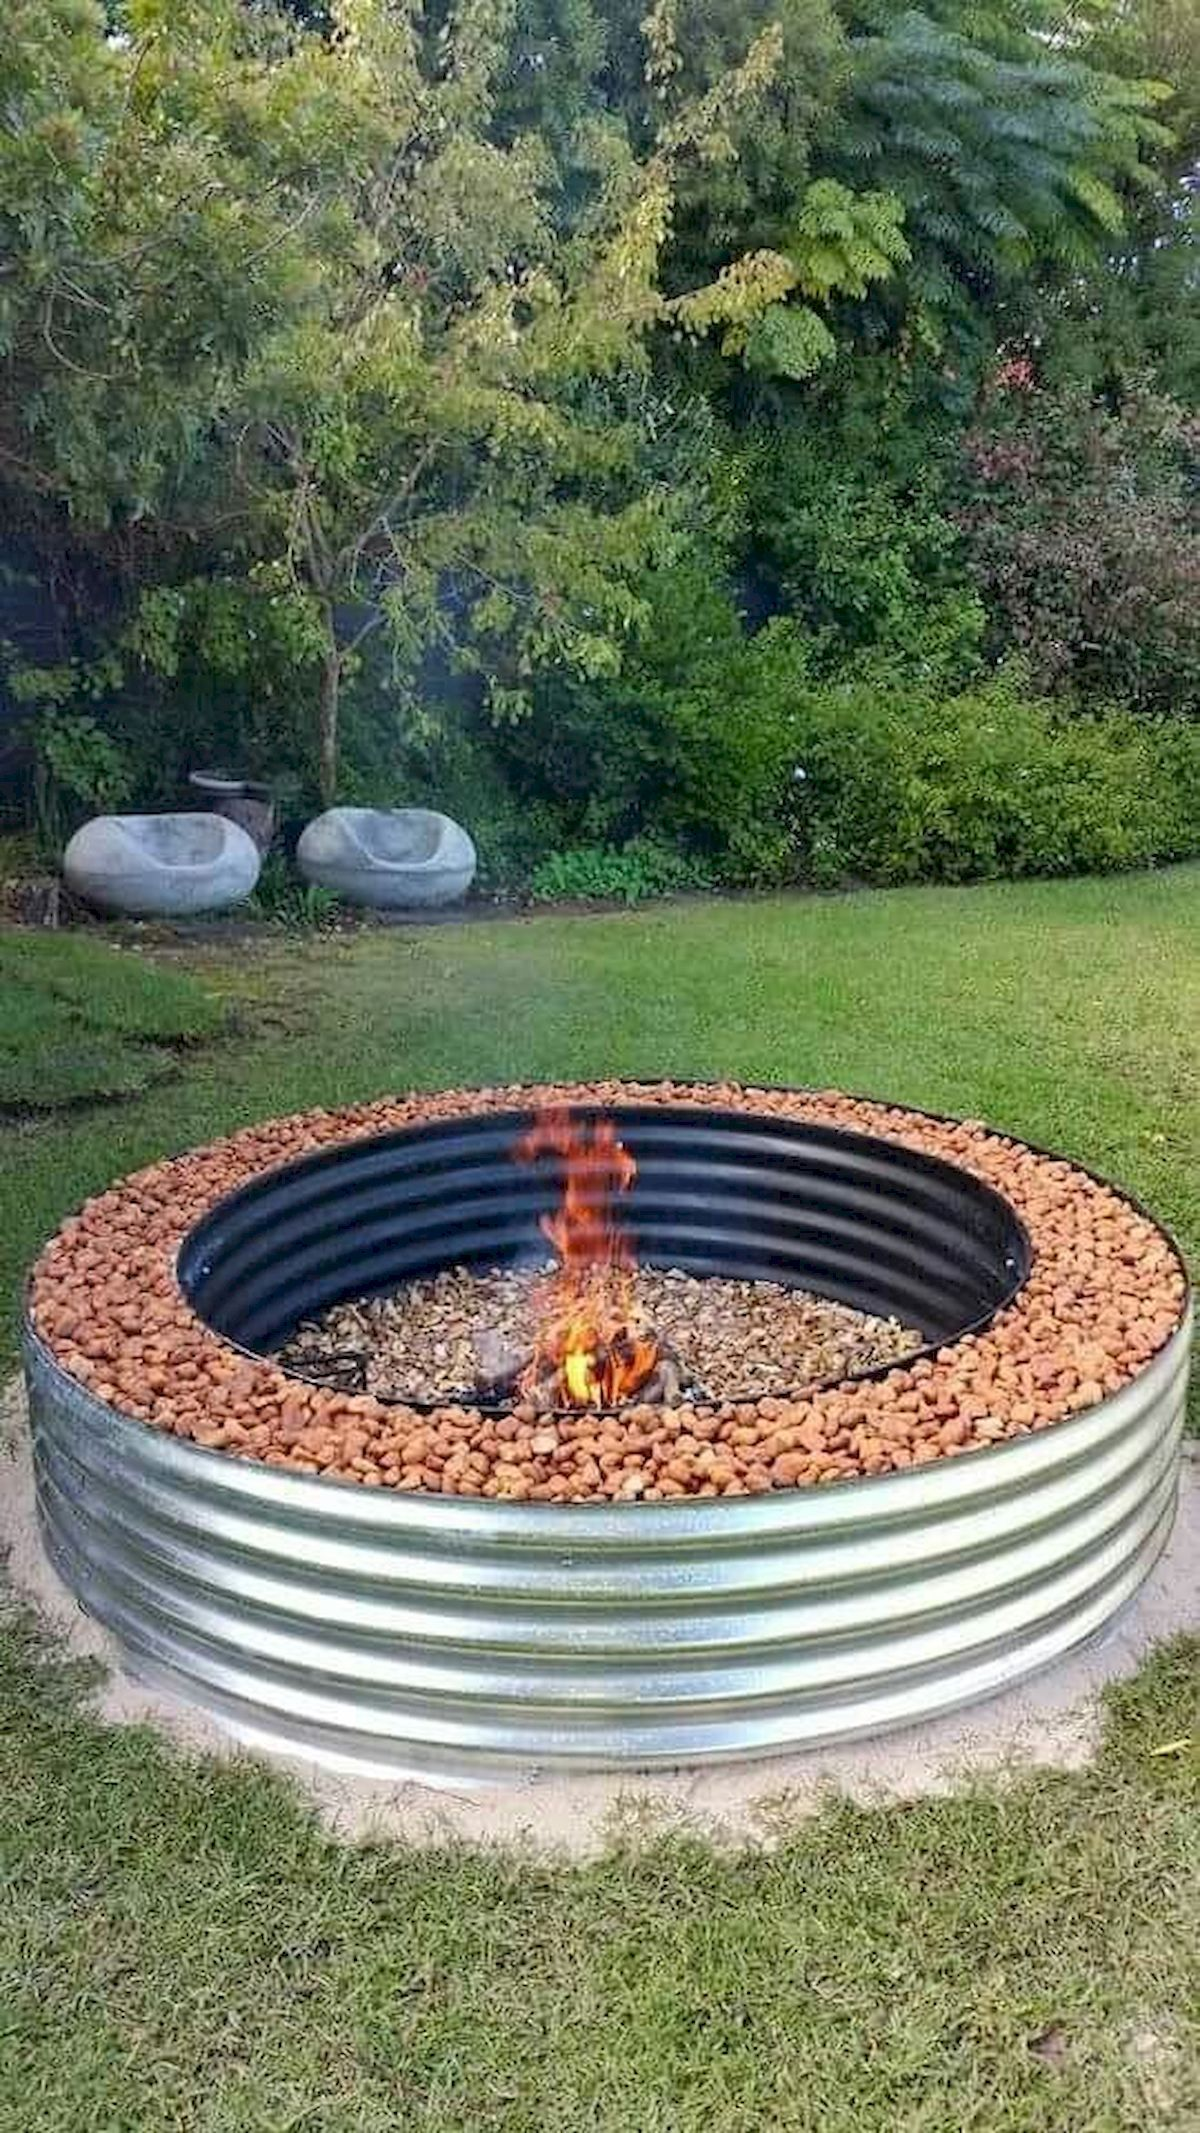 35 Great Fire Pit Designs for Your Gardens and Patios #diyfirepit